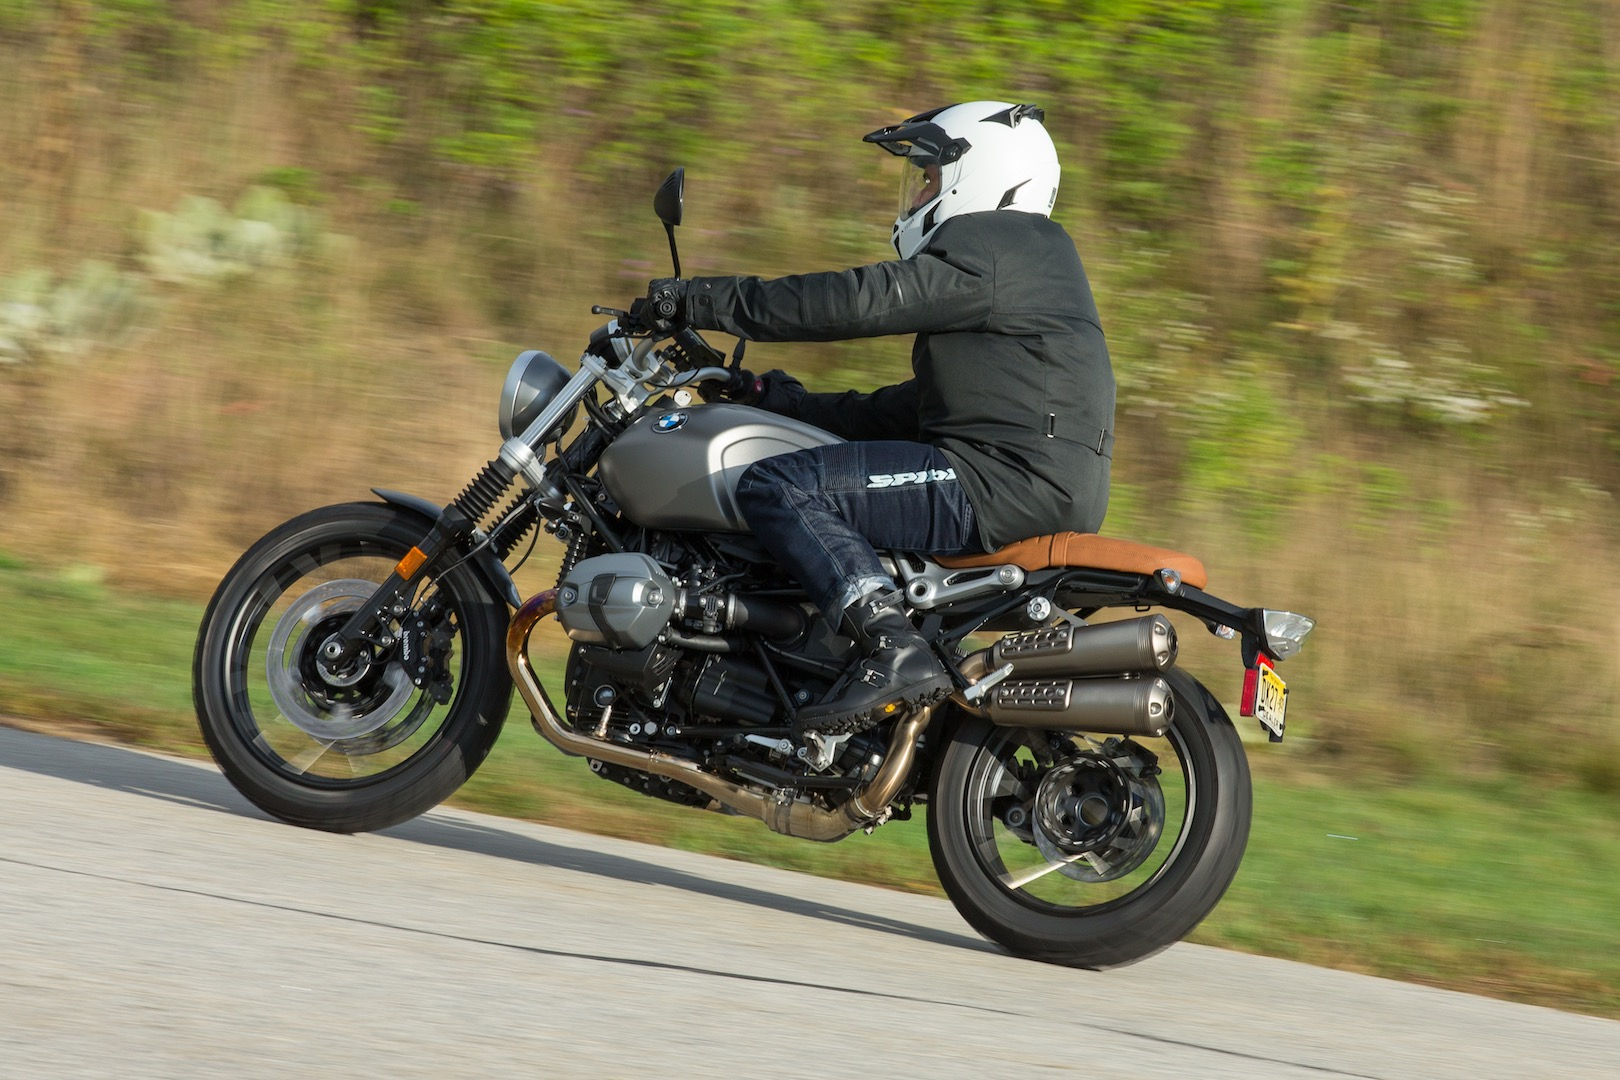 Top 20 Motorcycles Of 2017: BMW Scrambler